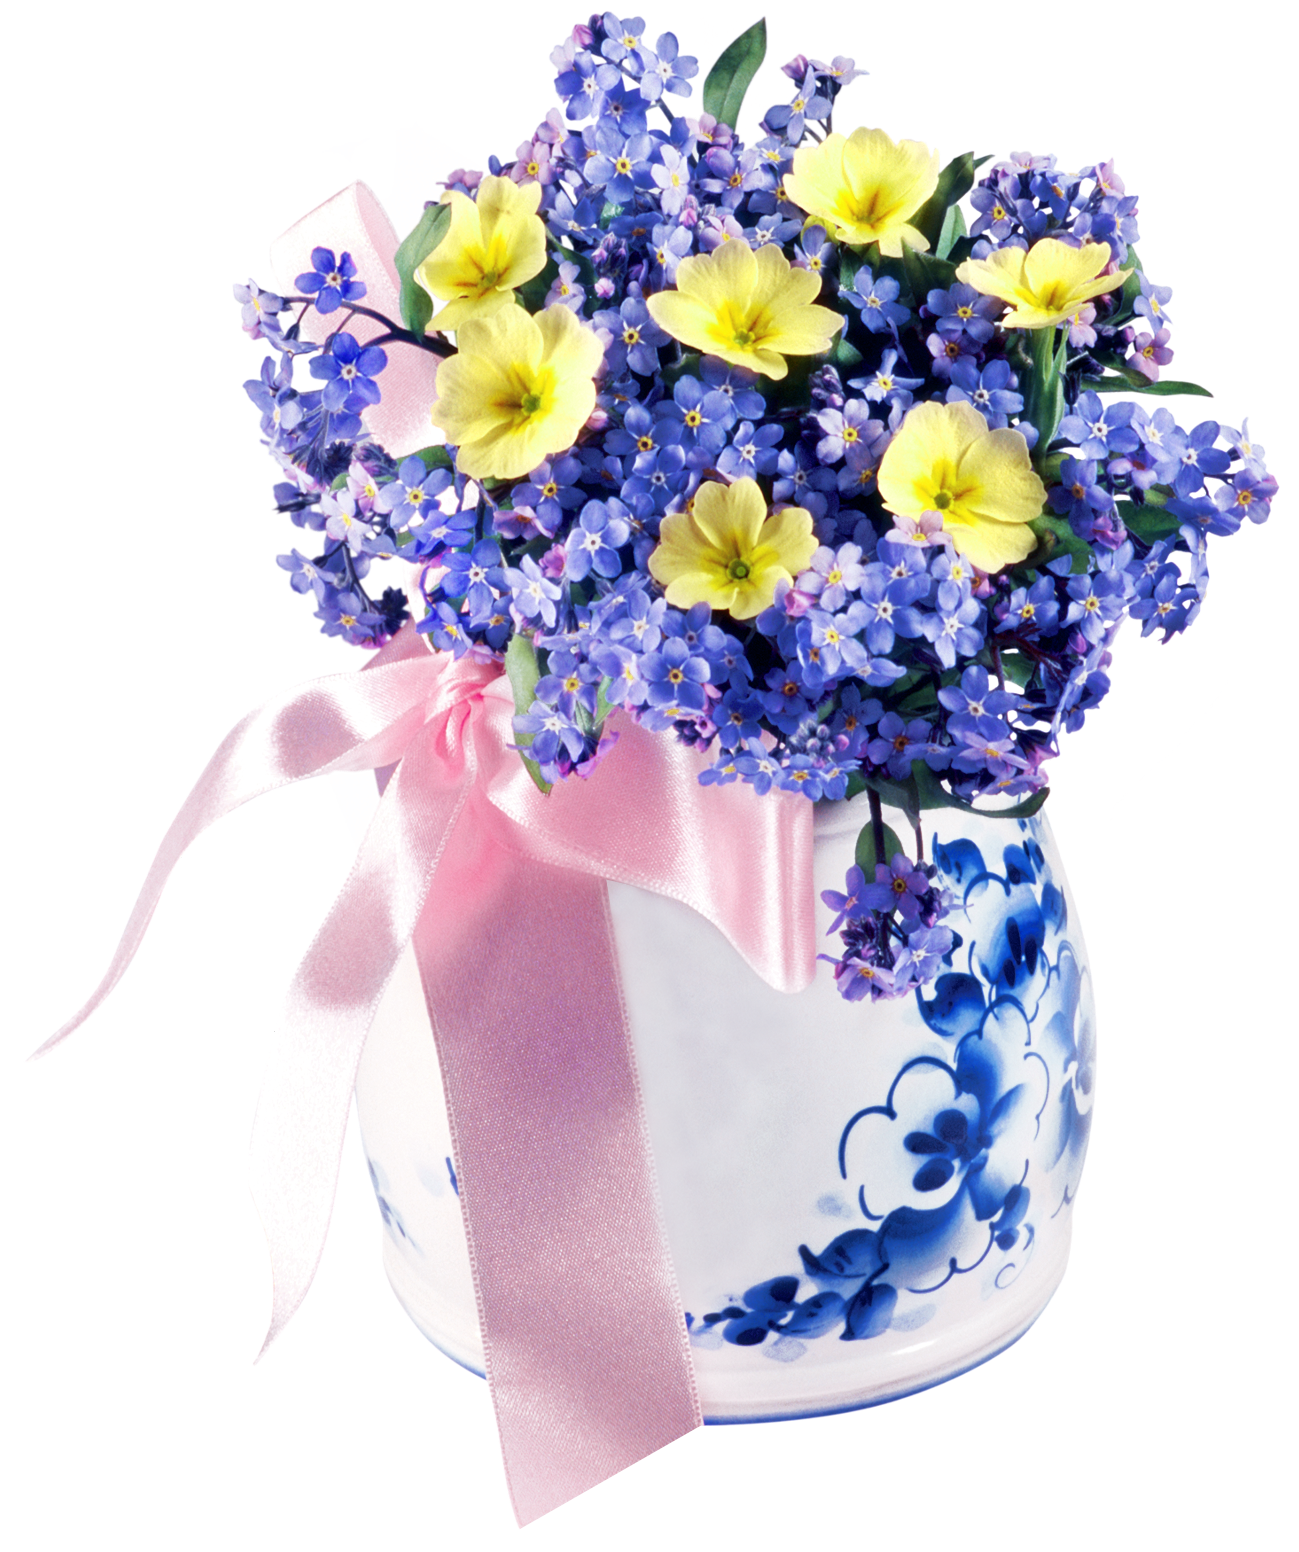 Flower in vase clipart clip freeuse Flowers in Vase PNG Clip Art Image | Gallery Yopriceville - High ... clip freeuse